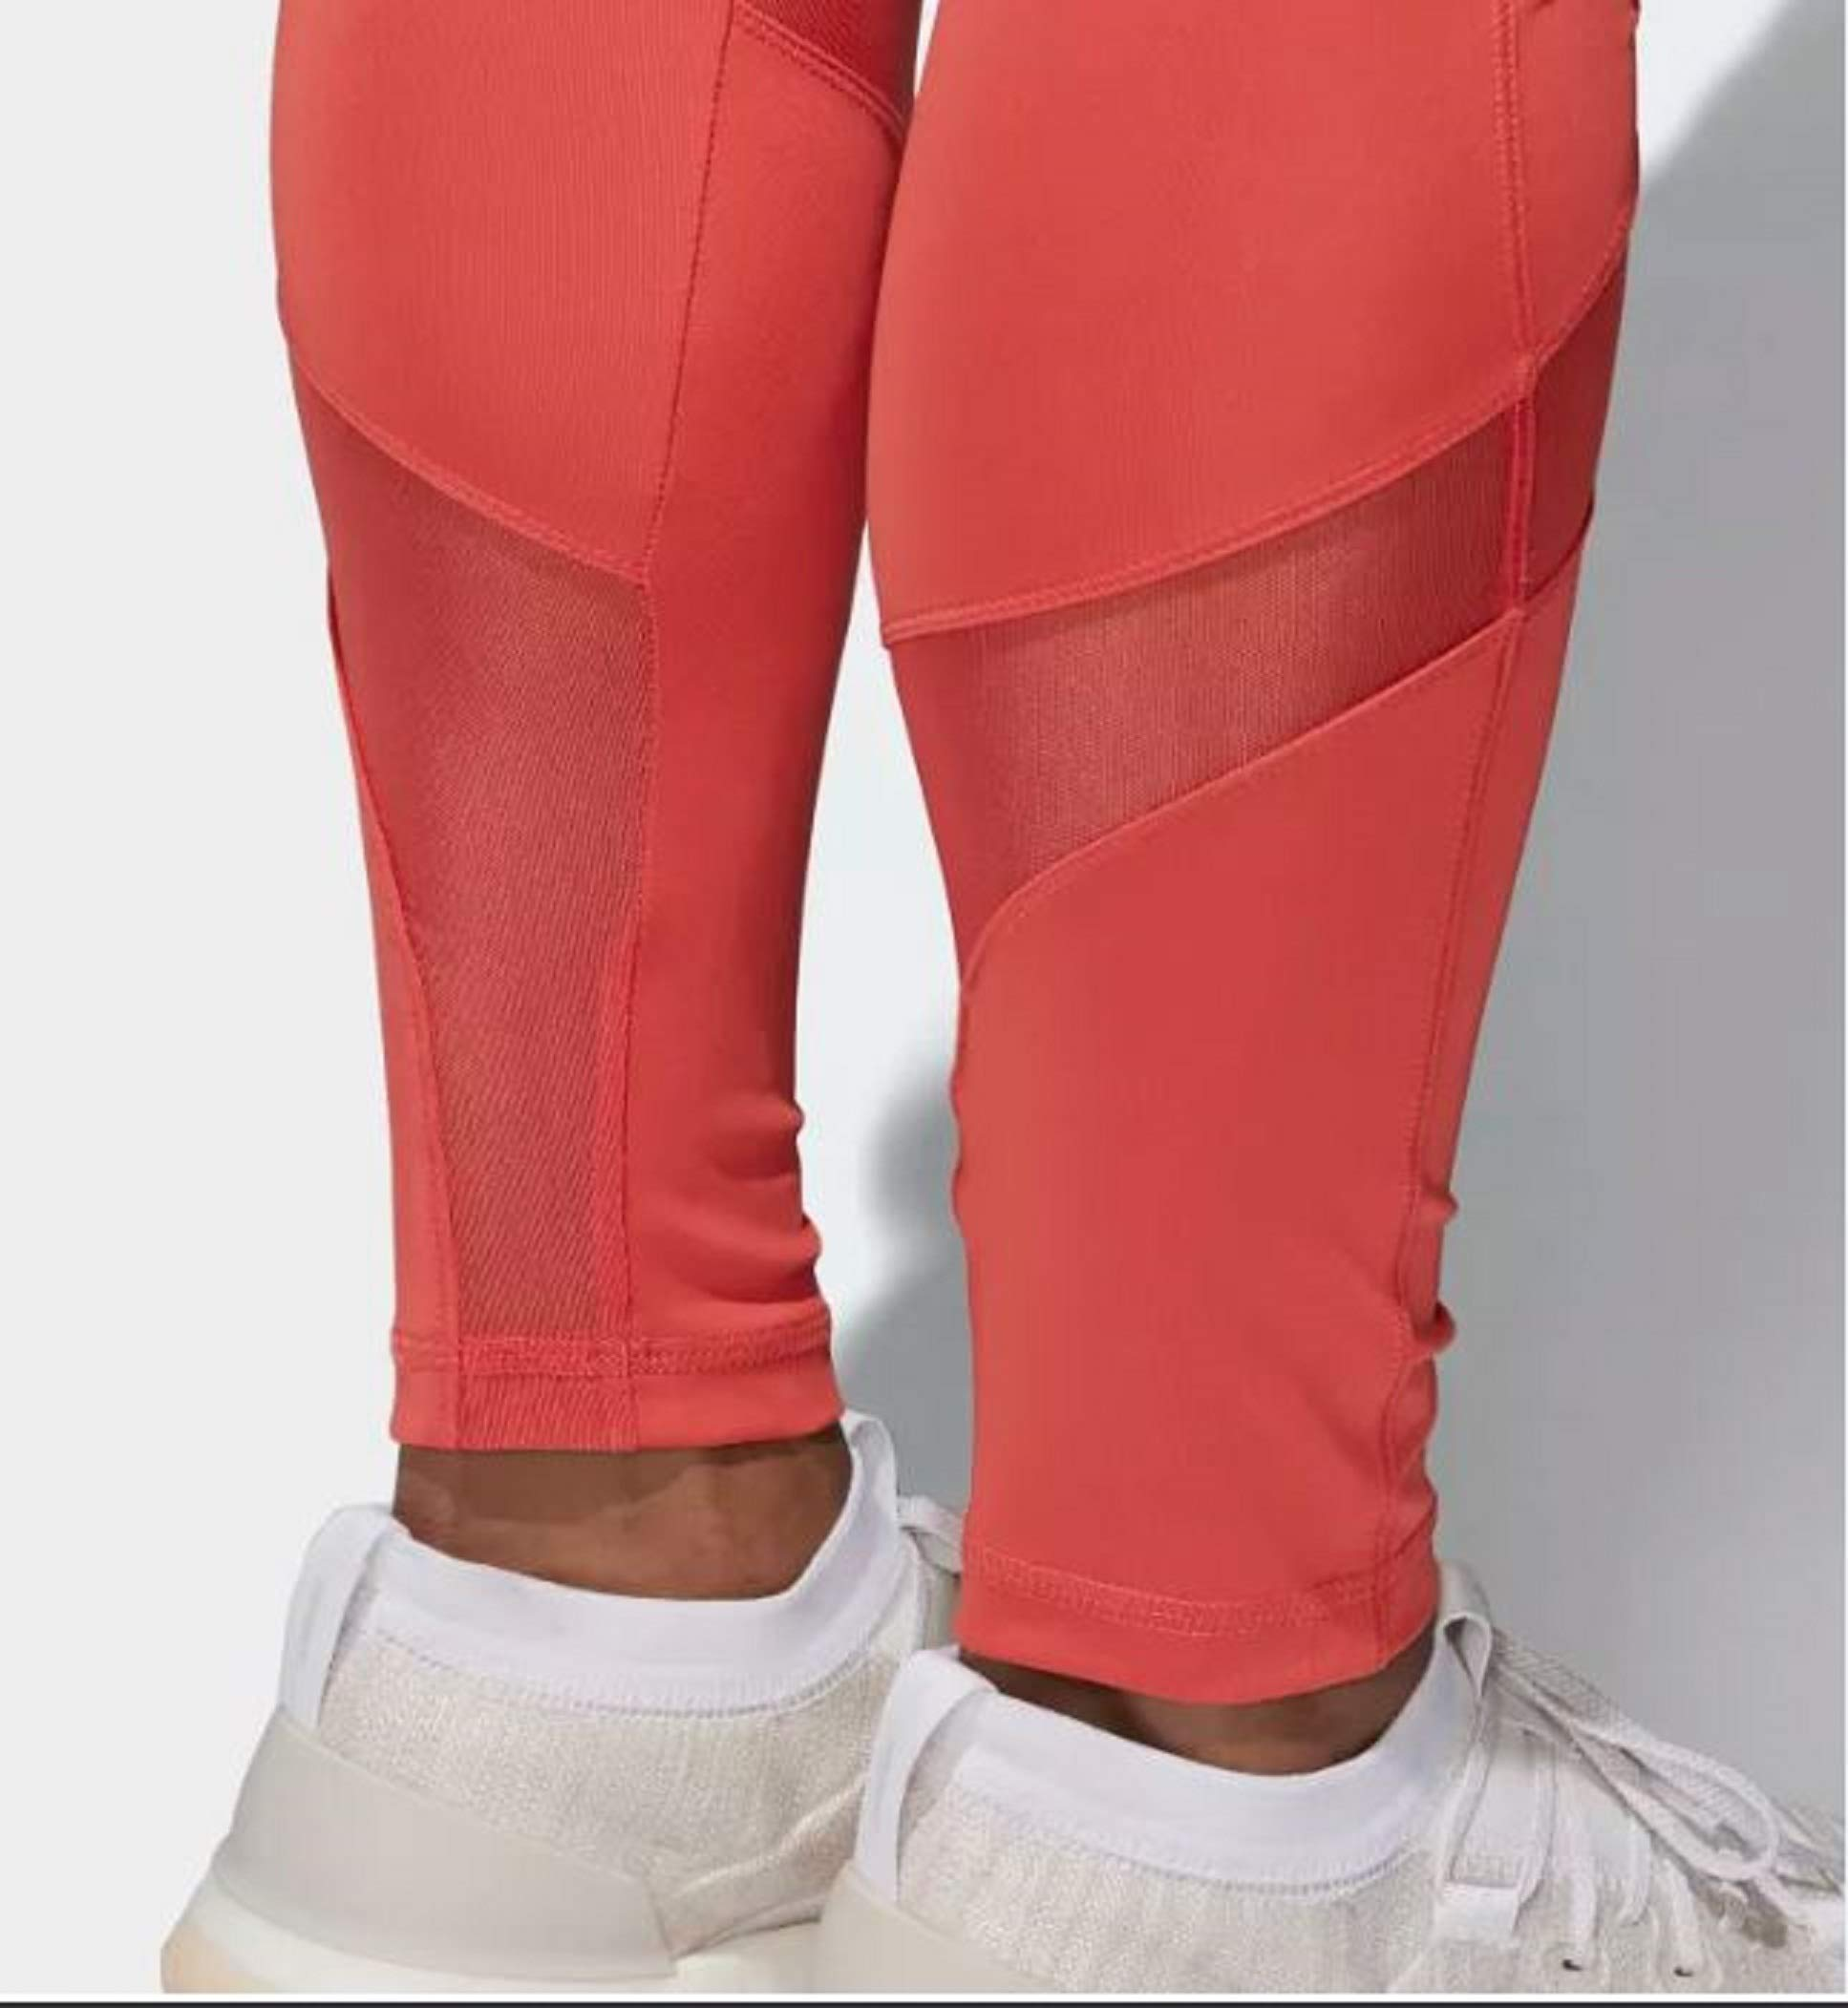 adidas Women's Climalite Ultimate High Rise Printed Long Tights, Trace Scarlet/Print, Small by adidas (Image #10)